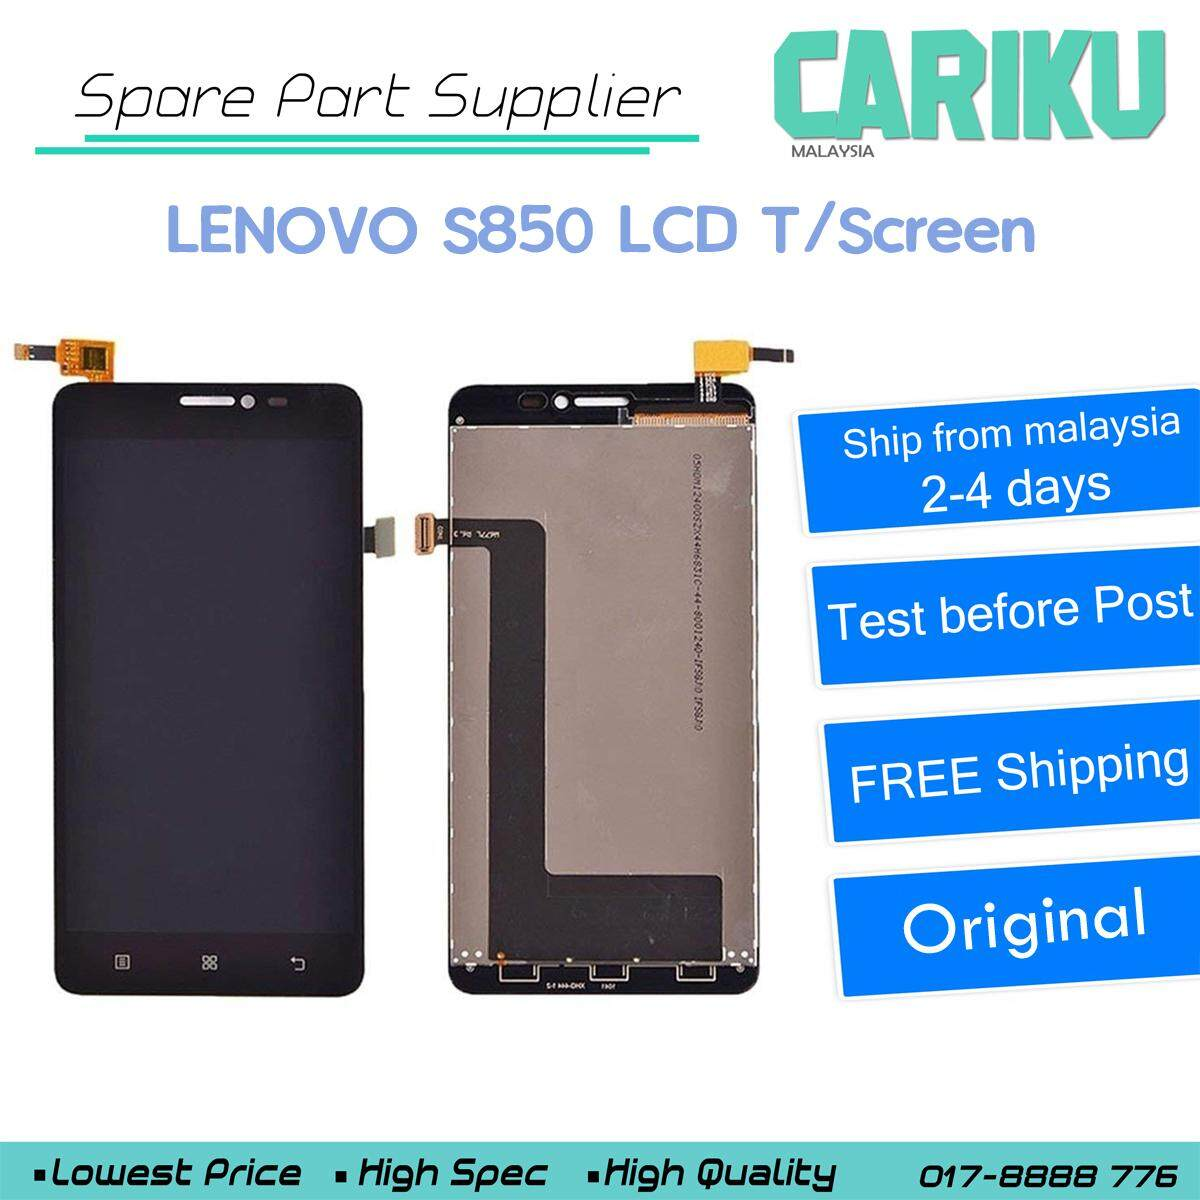 Lenovo S850 LCD Digitizer Touch Screen Replacement !! CARIKU